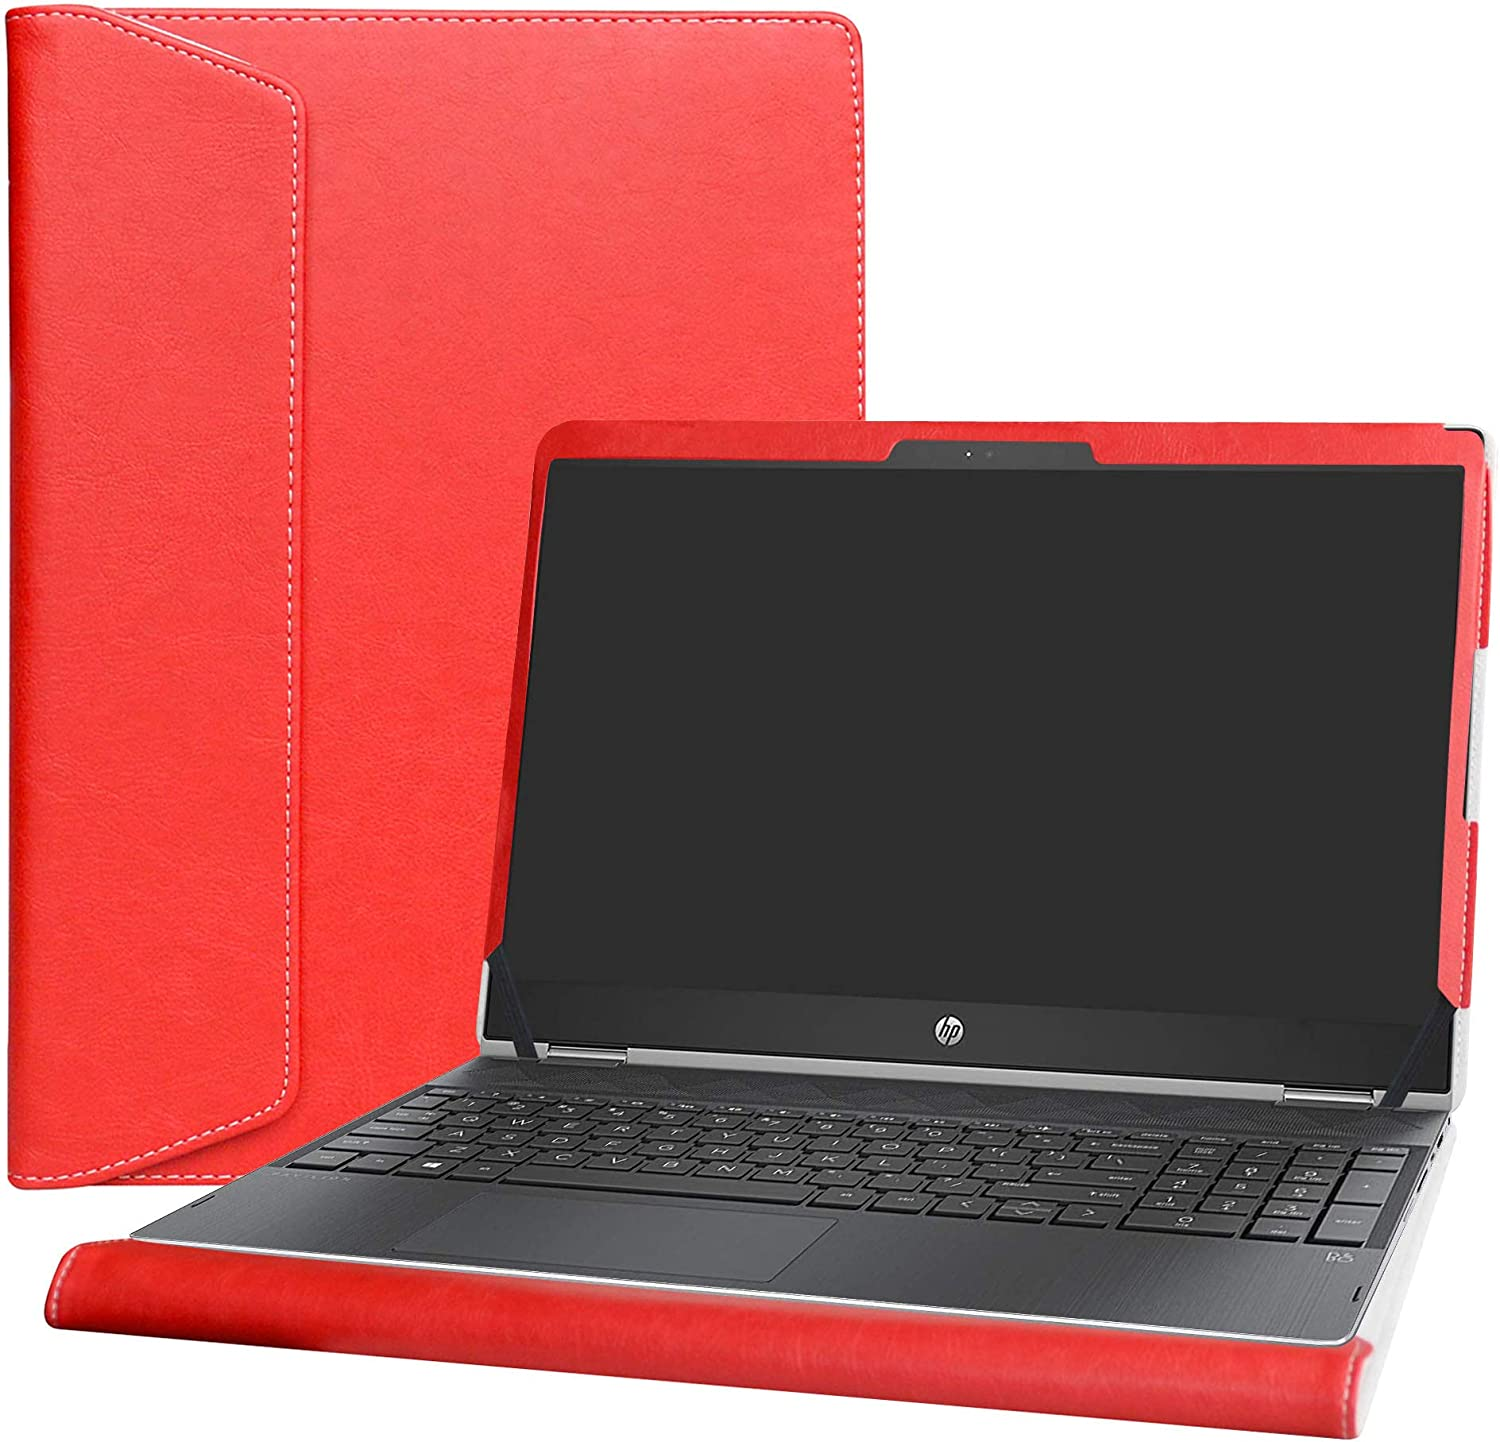 """Alapmk Protective Case Cover for 15.6"""" HP Pavilion X360 15 15t 15-crXXXX (15-cr0000 to 15-cr9999,Such as 15-cr0011nr 15-cr0010nr) Laptop [Warning:Not fit Pavilion X360 15 15-brXXX 15-bkXXX],Red"""